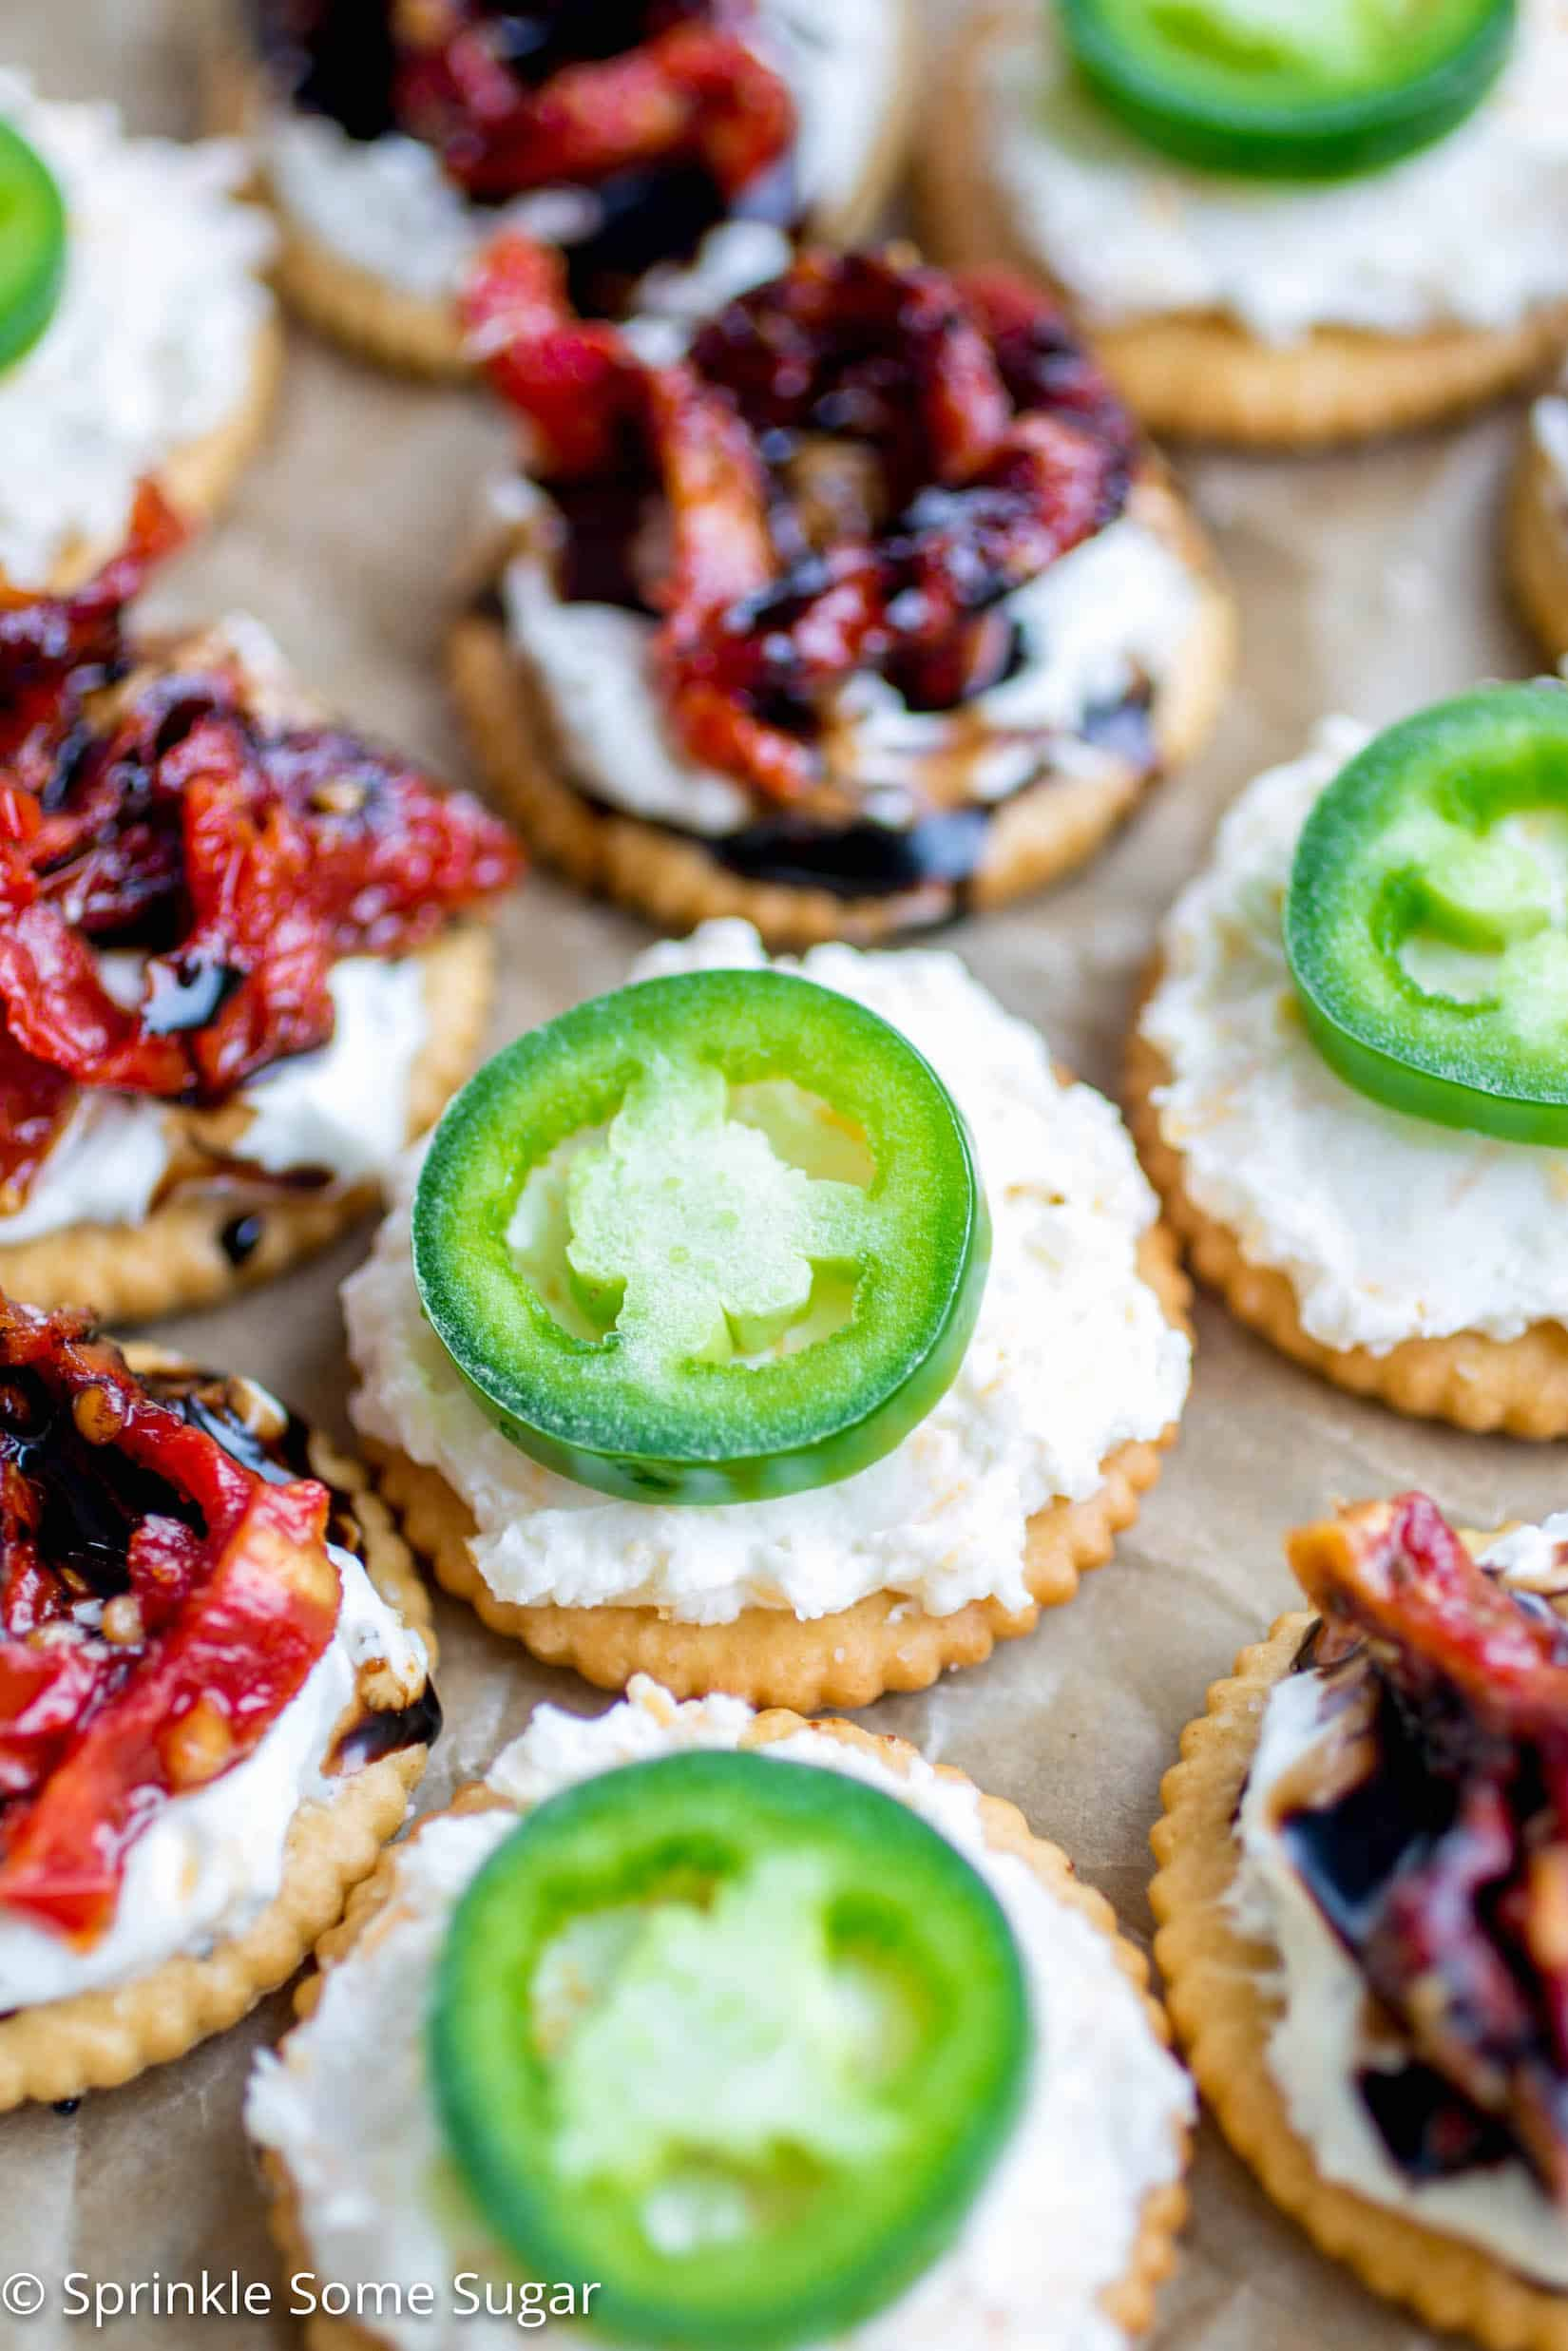 Four Easy Bite-Size Party Recipes - These sweet and savory bite-size recipes using RITZ Crackers, cream cheese and a few other tasty ingredients are going to be the star of your next gathering!